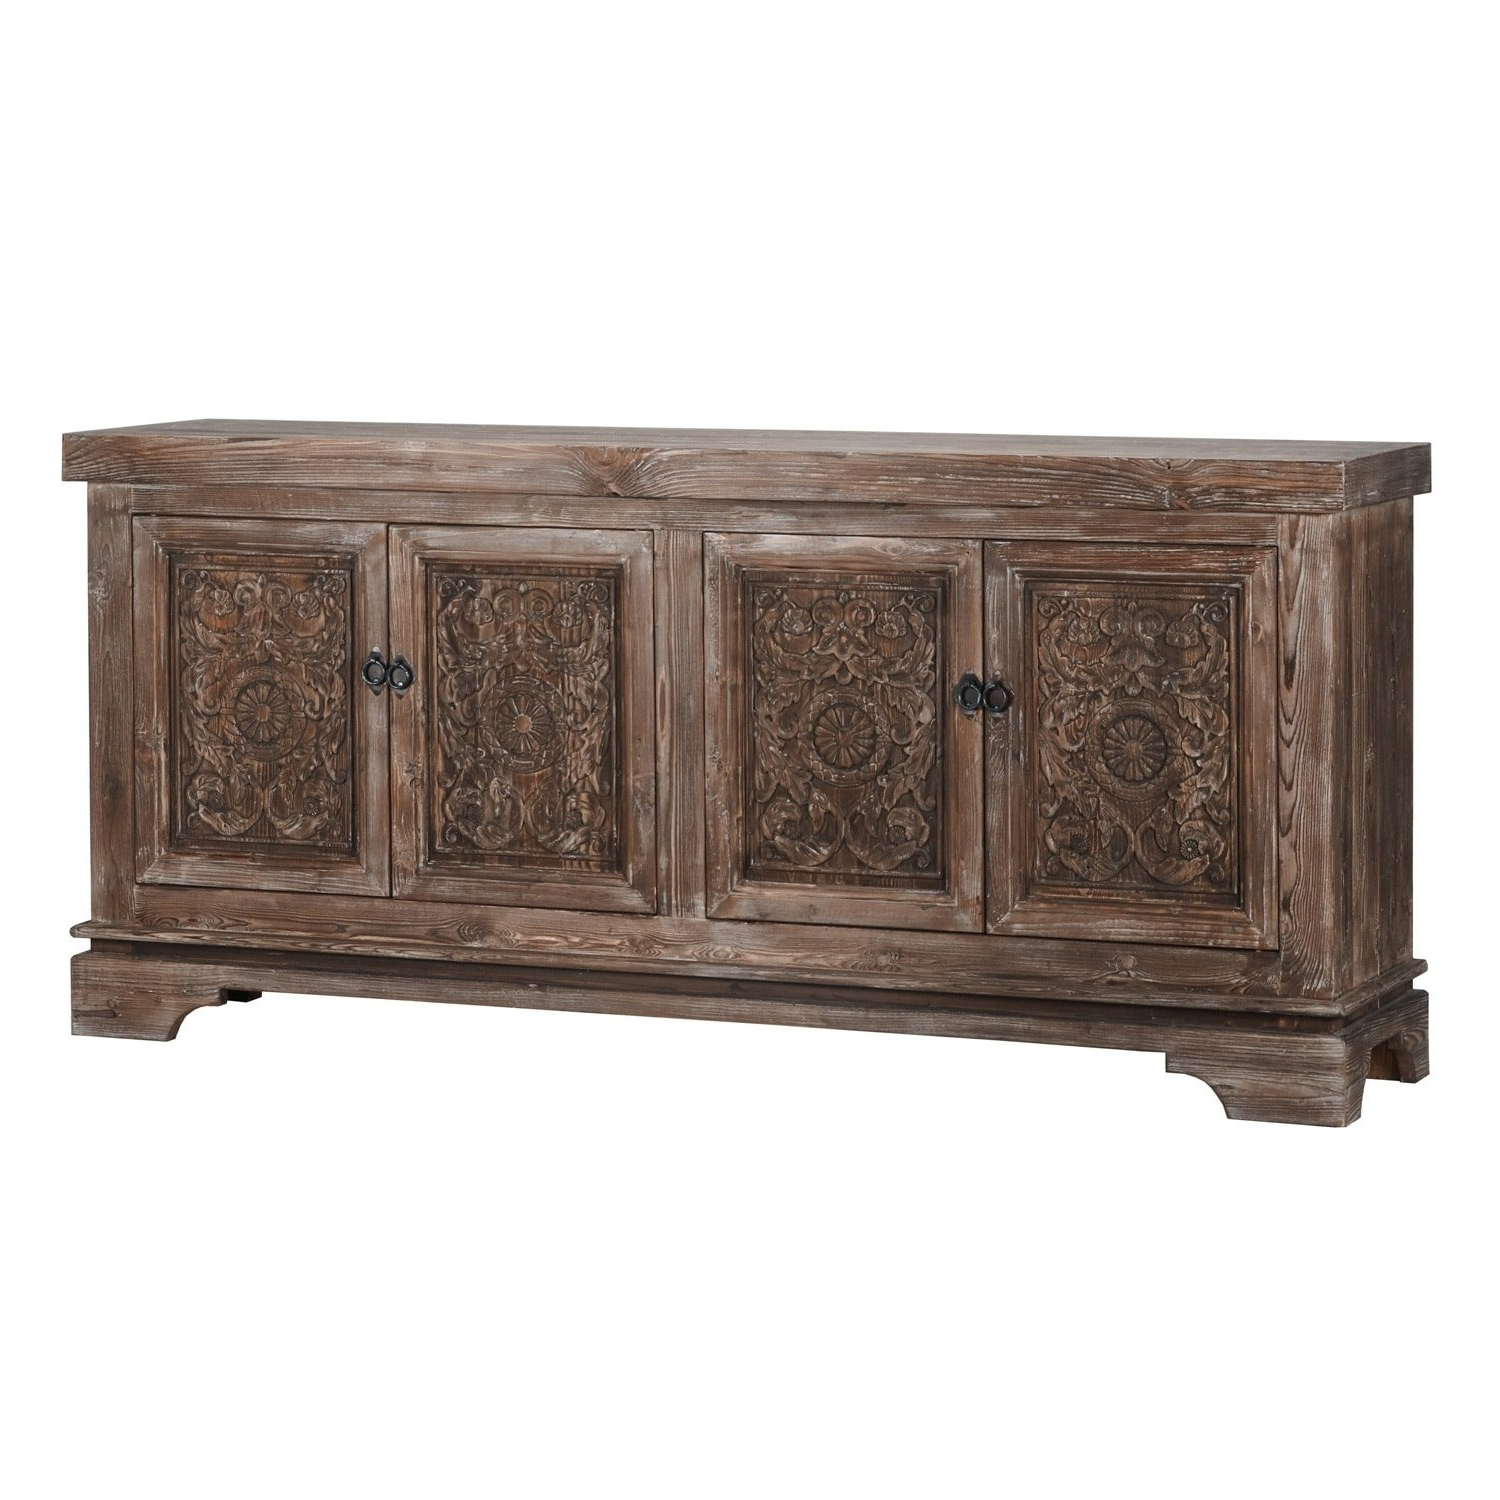 Shop Allen Rustic Brown Reclaimed Pine 82 Inch Sideboardkosas With 2018 Blue Stone Light Rustic Black Sideboards (Gallery 13 of 20)